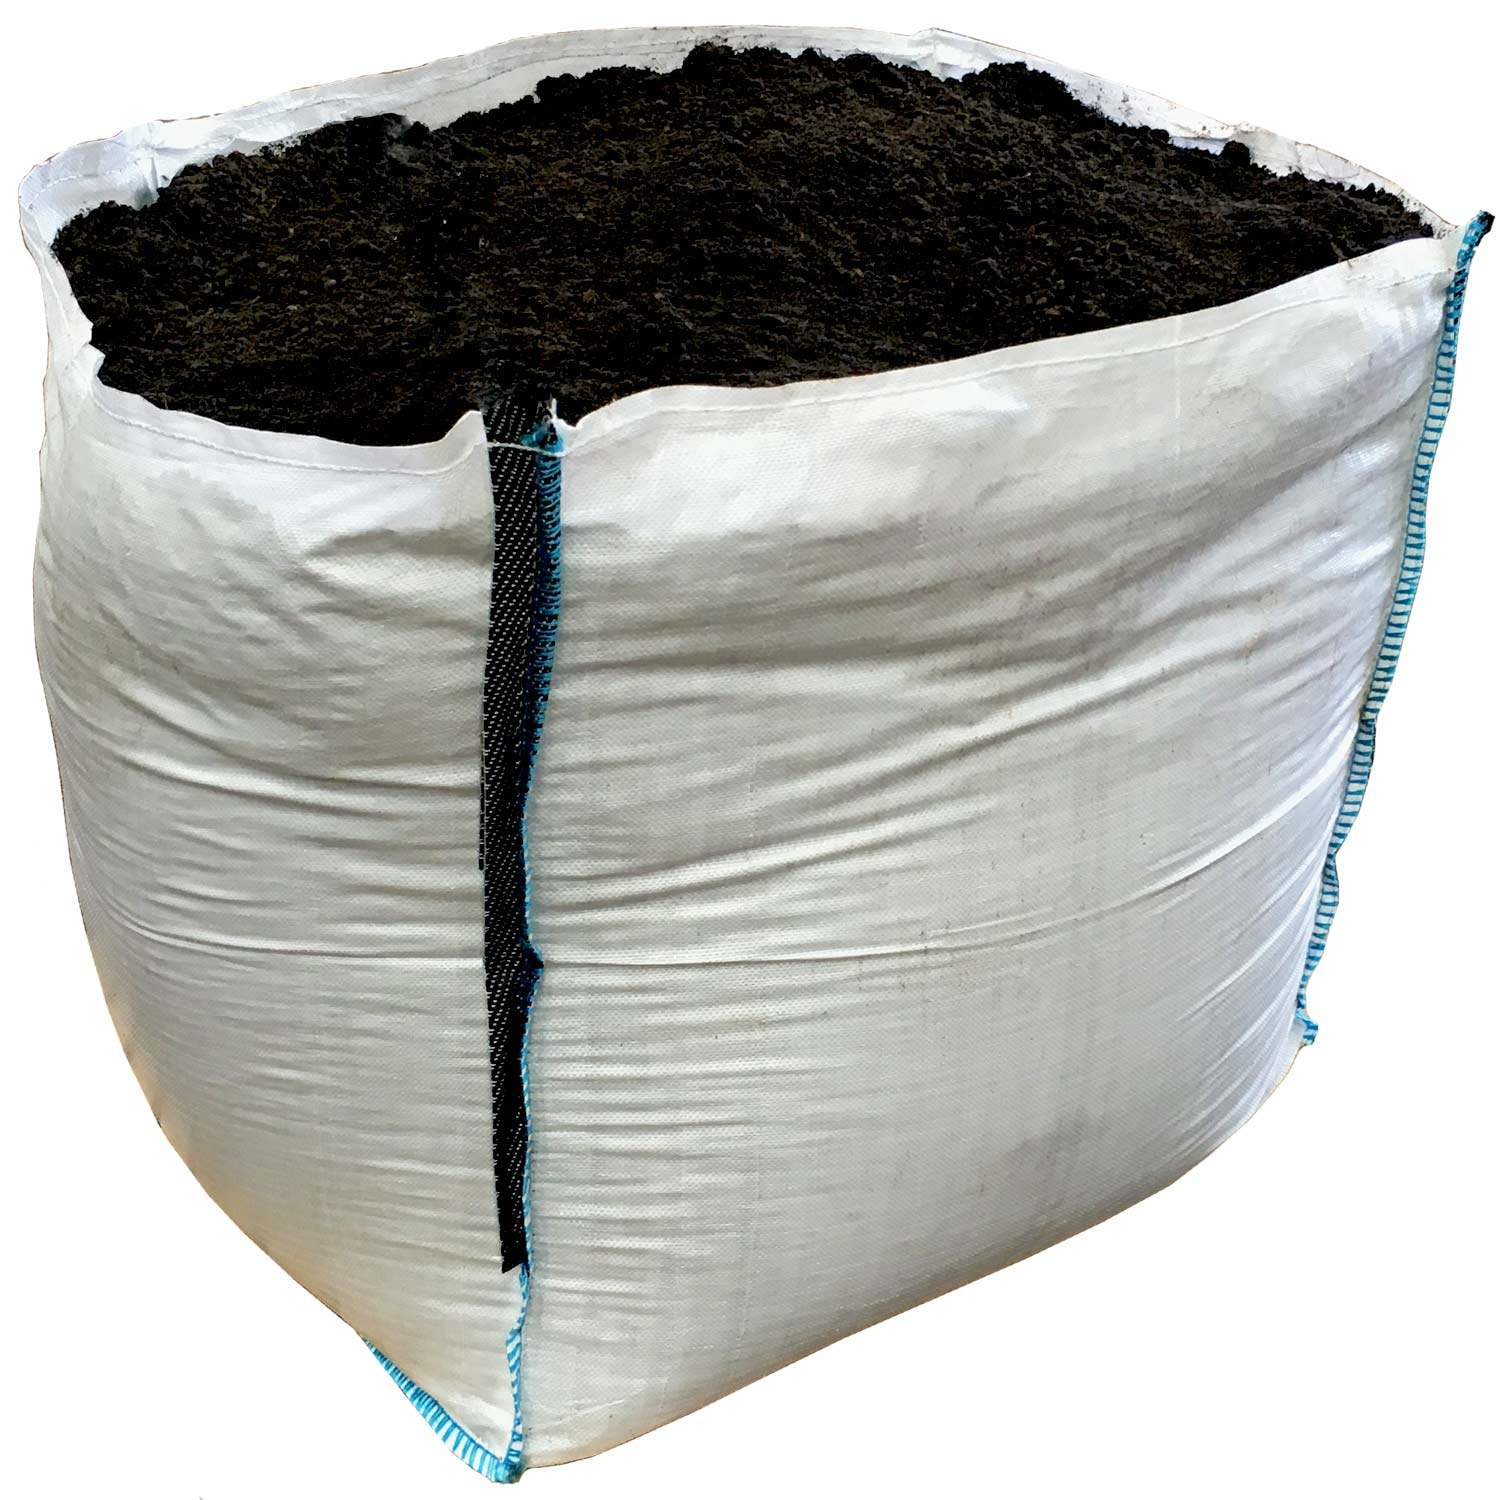 Soil improver buy turf for Soil improver